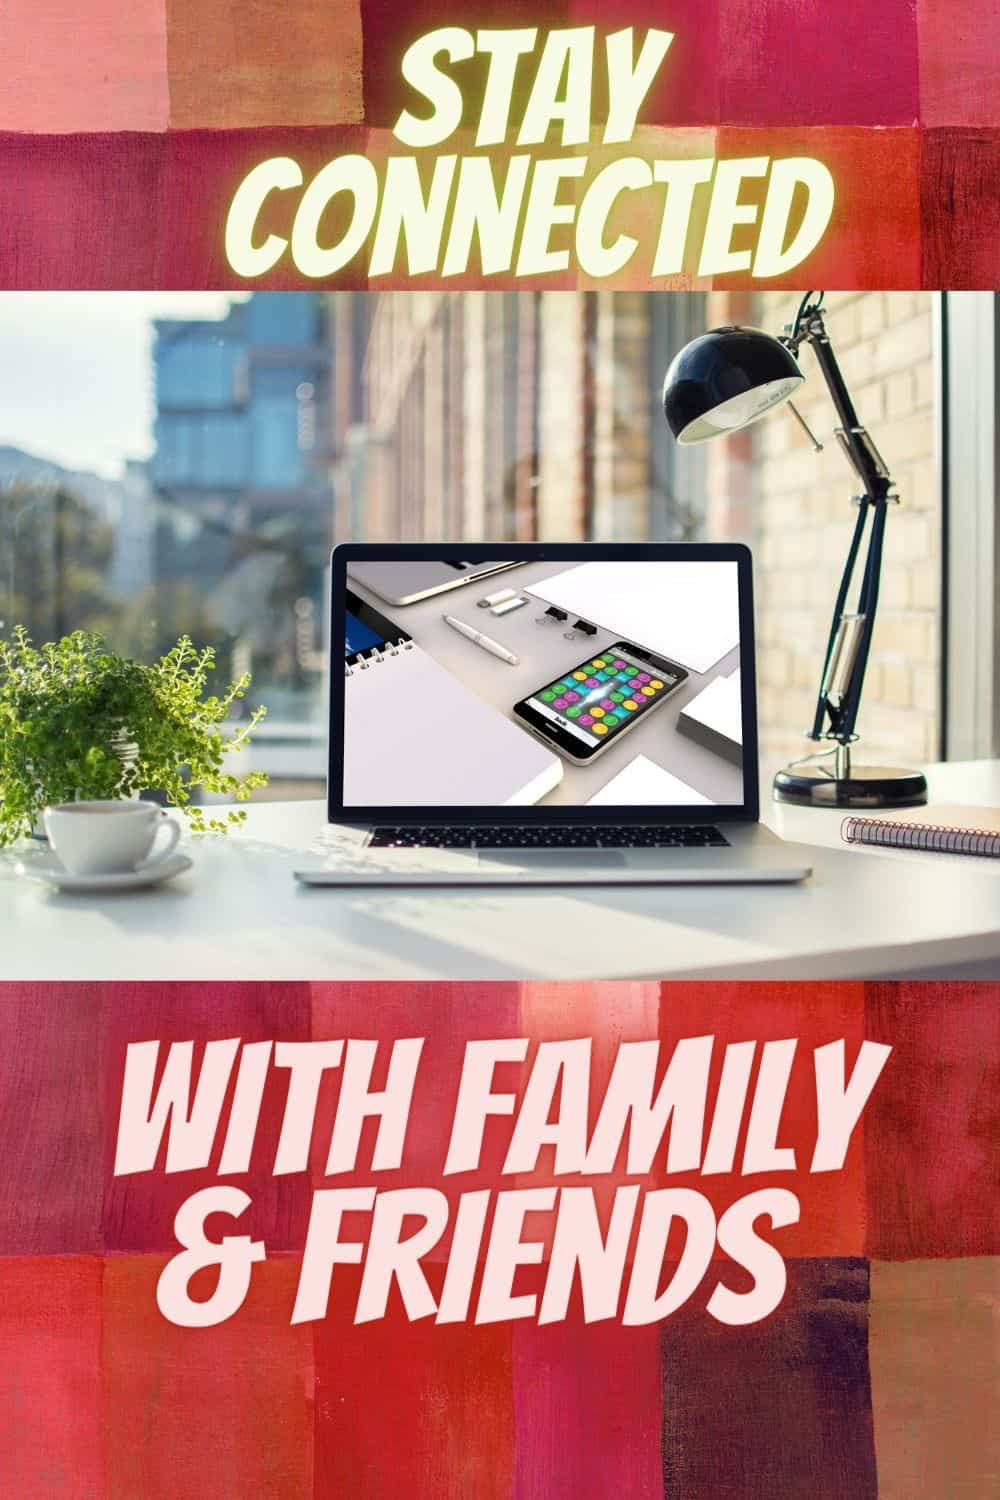 staying connected with family and friends via laptop